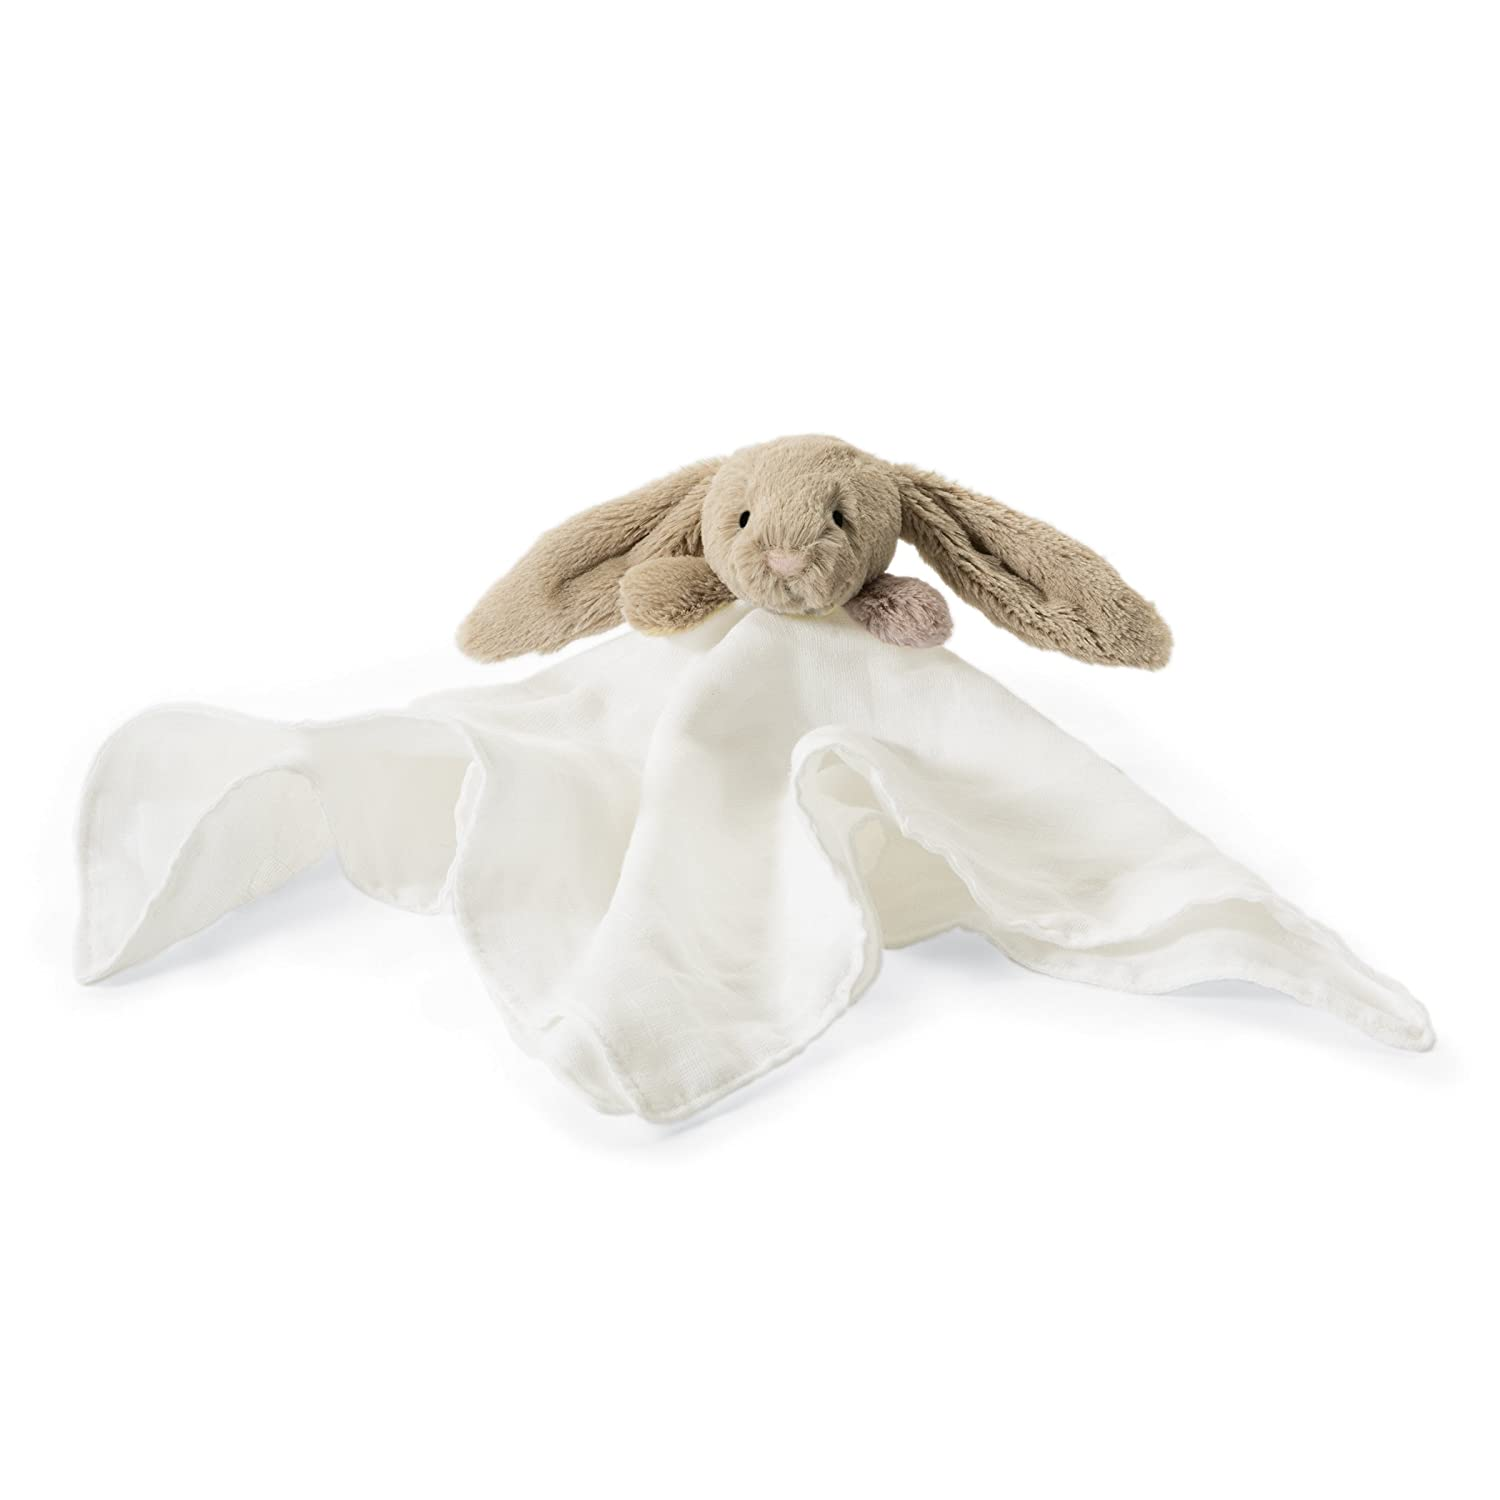 Amazon.com: Jellycat – Conejo de color beige de muselina de ...